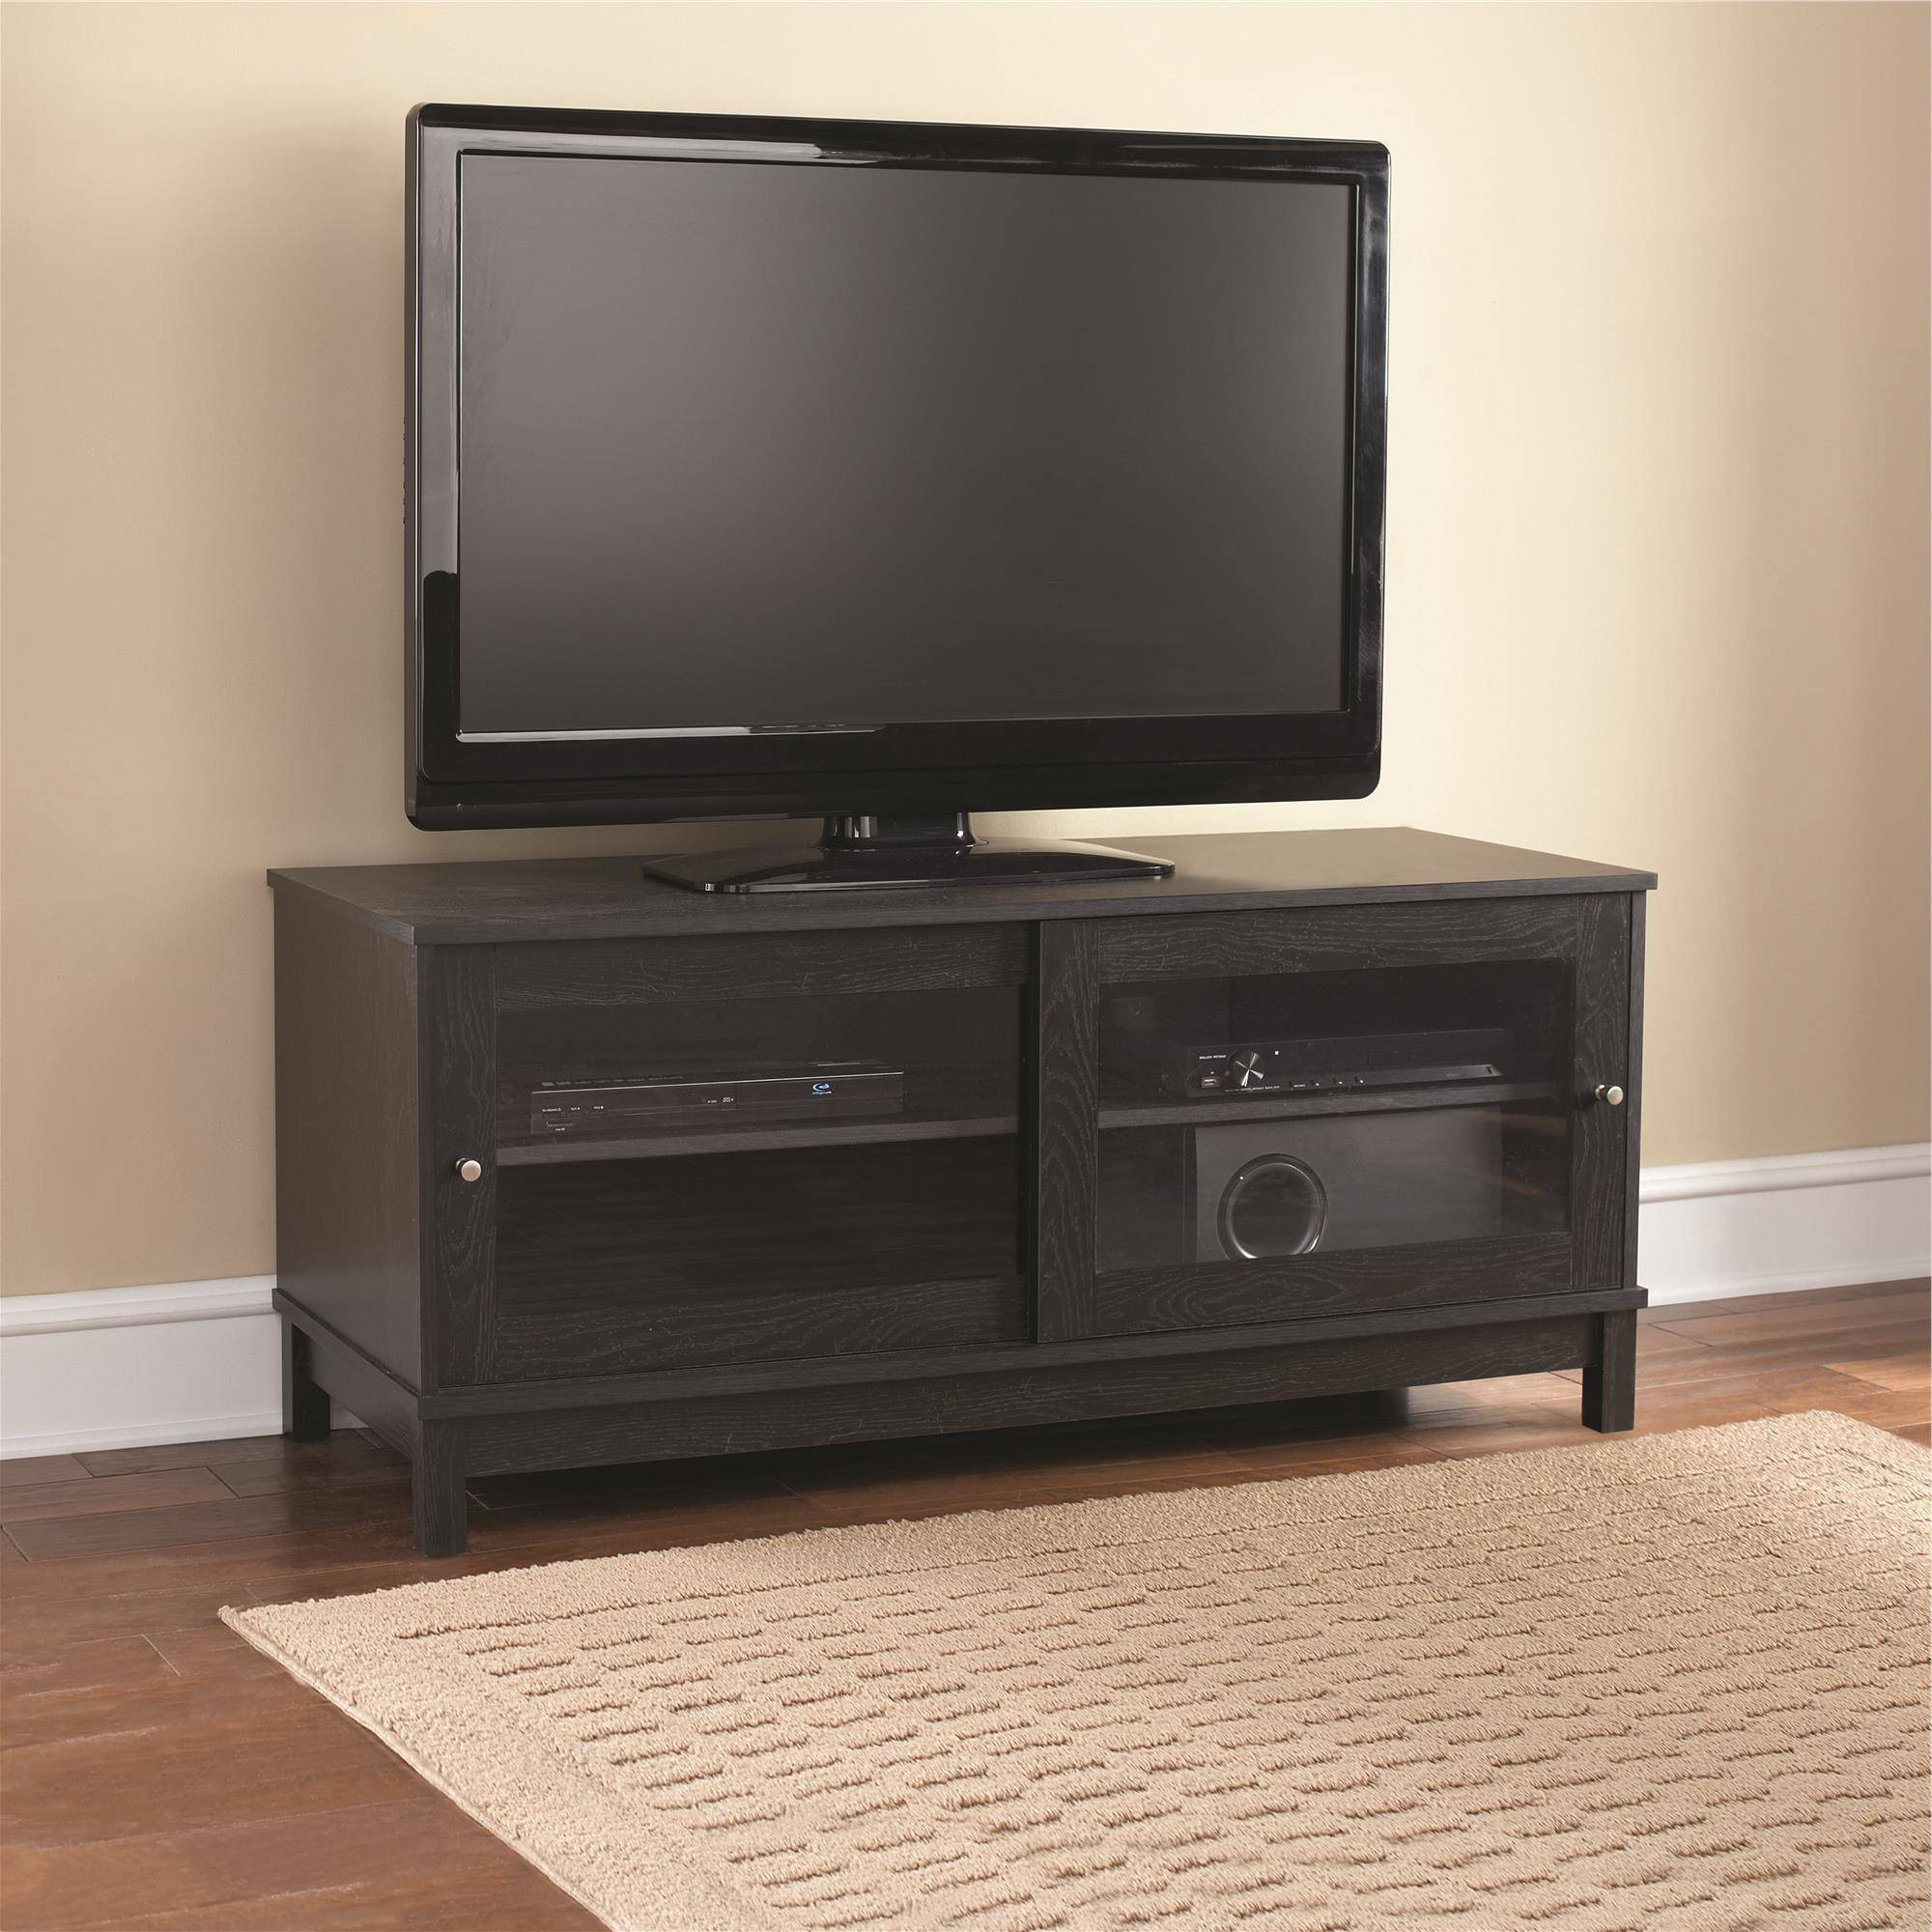 "Most Recent Mainstays 55"" Tv Stand With Sliding Glass Doors, Multiple Colors In Wooden Tv Stands For 55 Inch Flat Screen (View 2 of 20)"